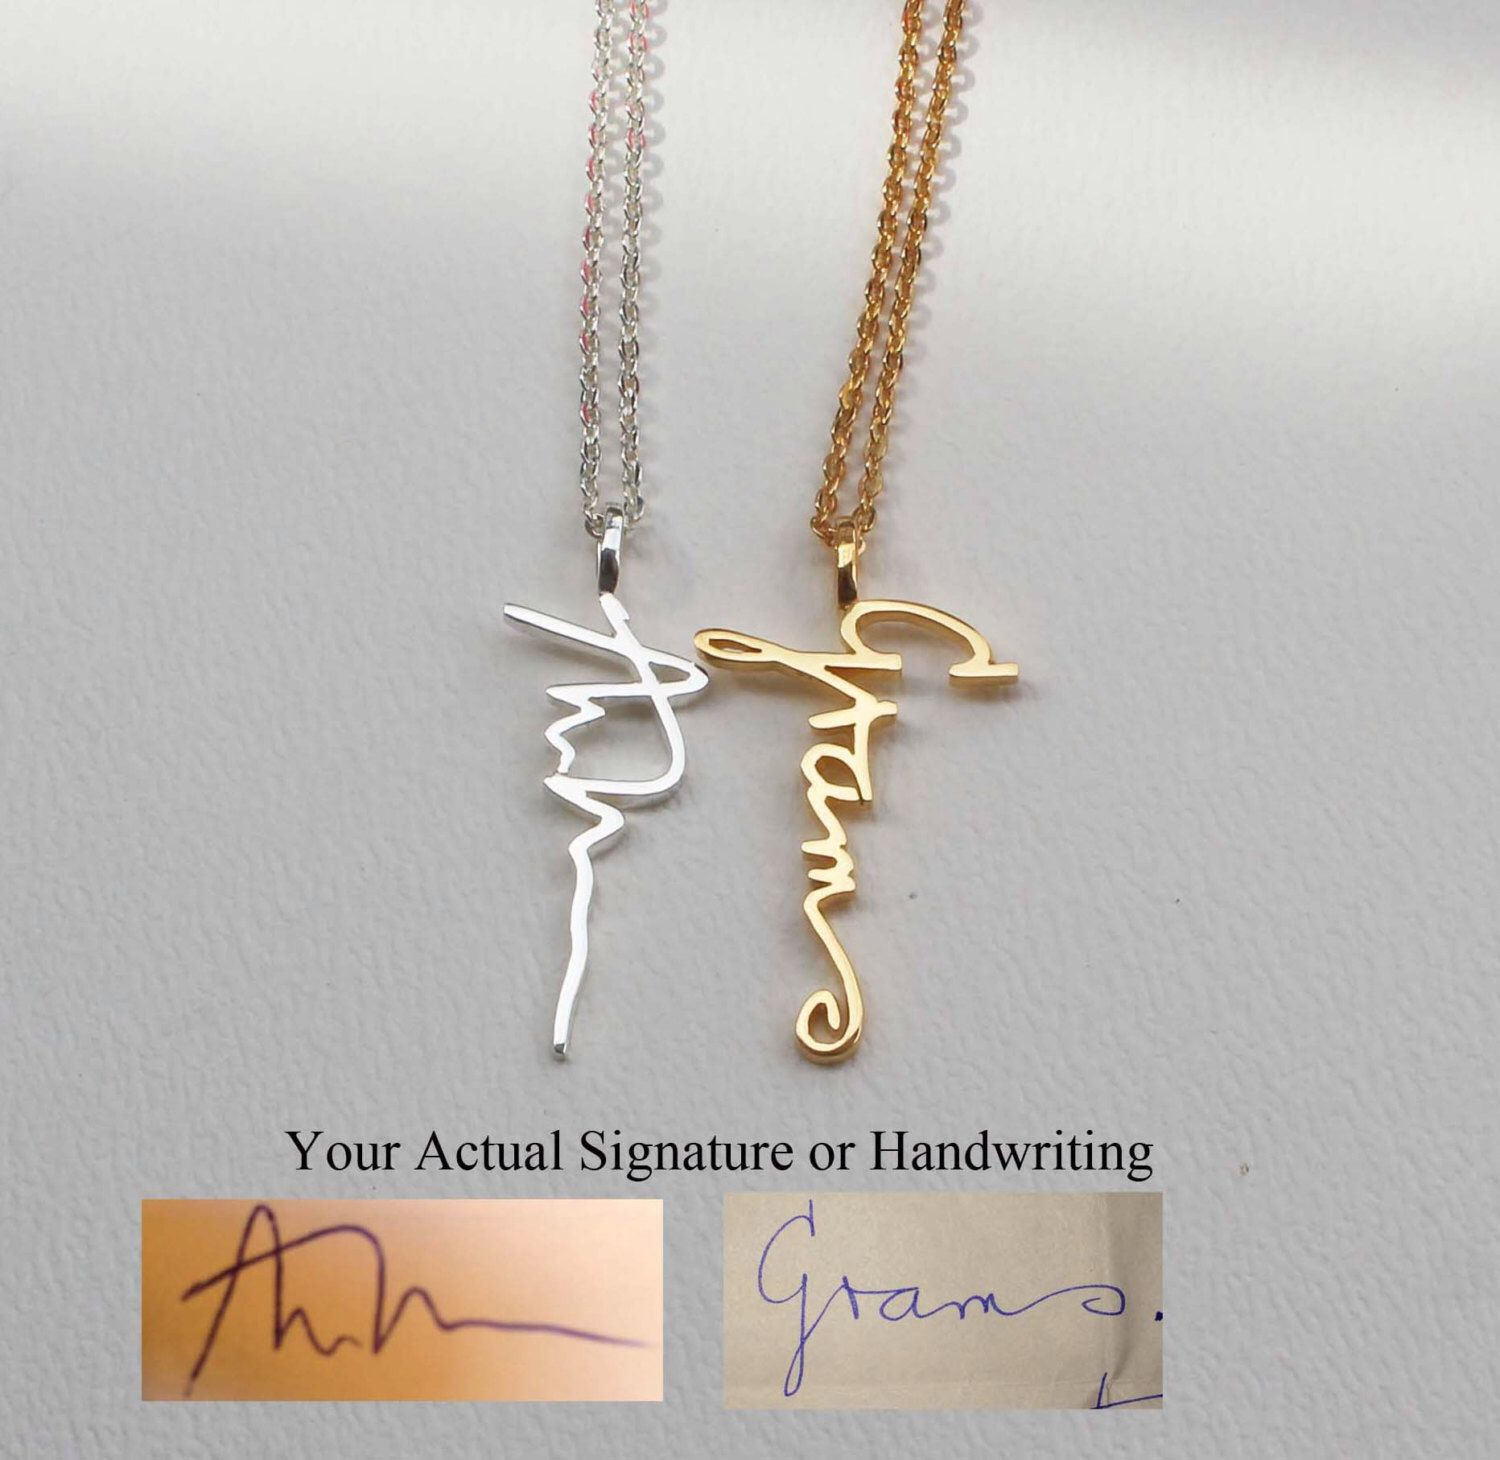 Sale 22 off actual personalized necklace handwriting jewelry sale 22 off actual personalized necklace handwriting jewelry custom necklace vertical aloadofball Images